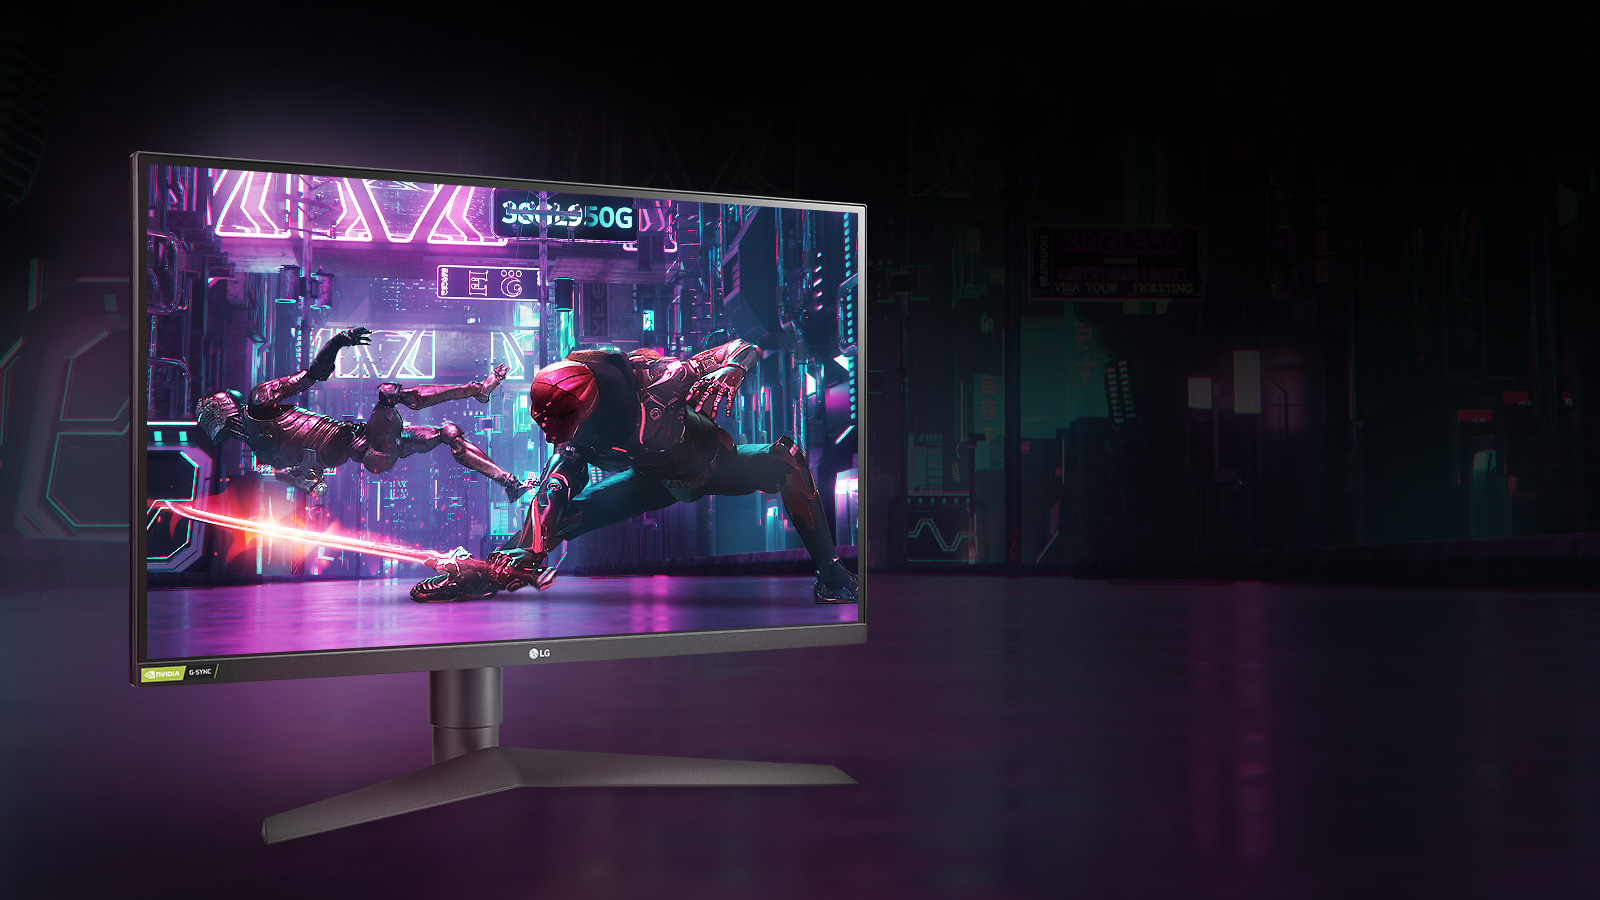 Top 5 reasons why the LG UltraGear 27GL850 is the best monitor for your gaming needs